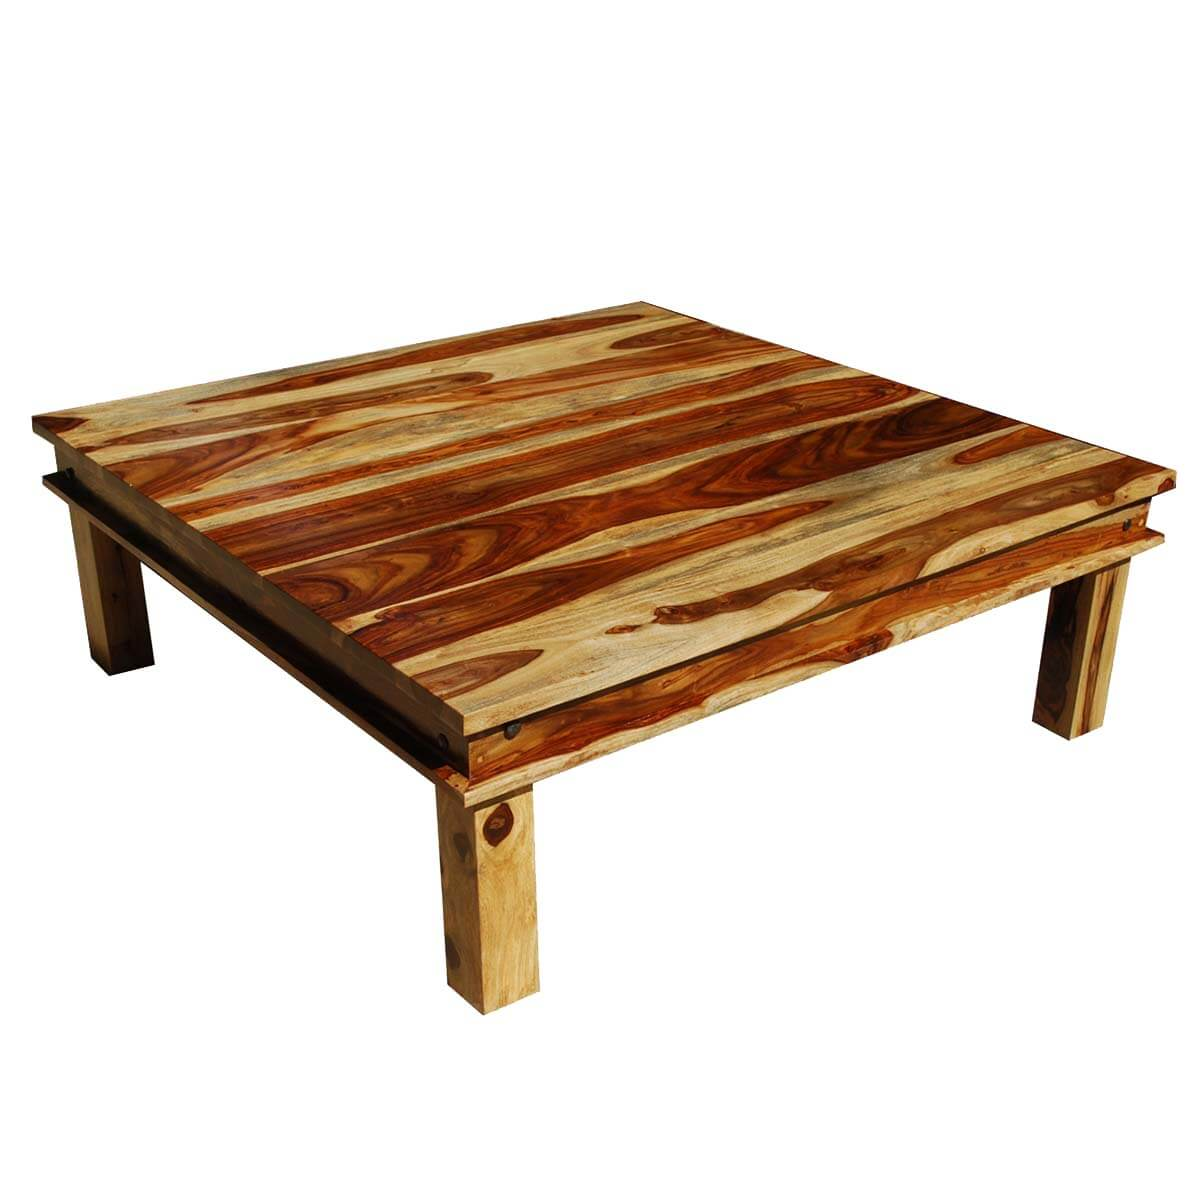 Large square wood rustic coffee table Large square coffee table